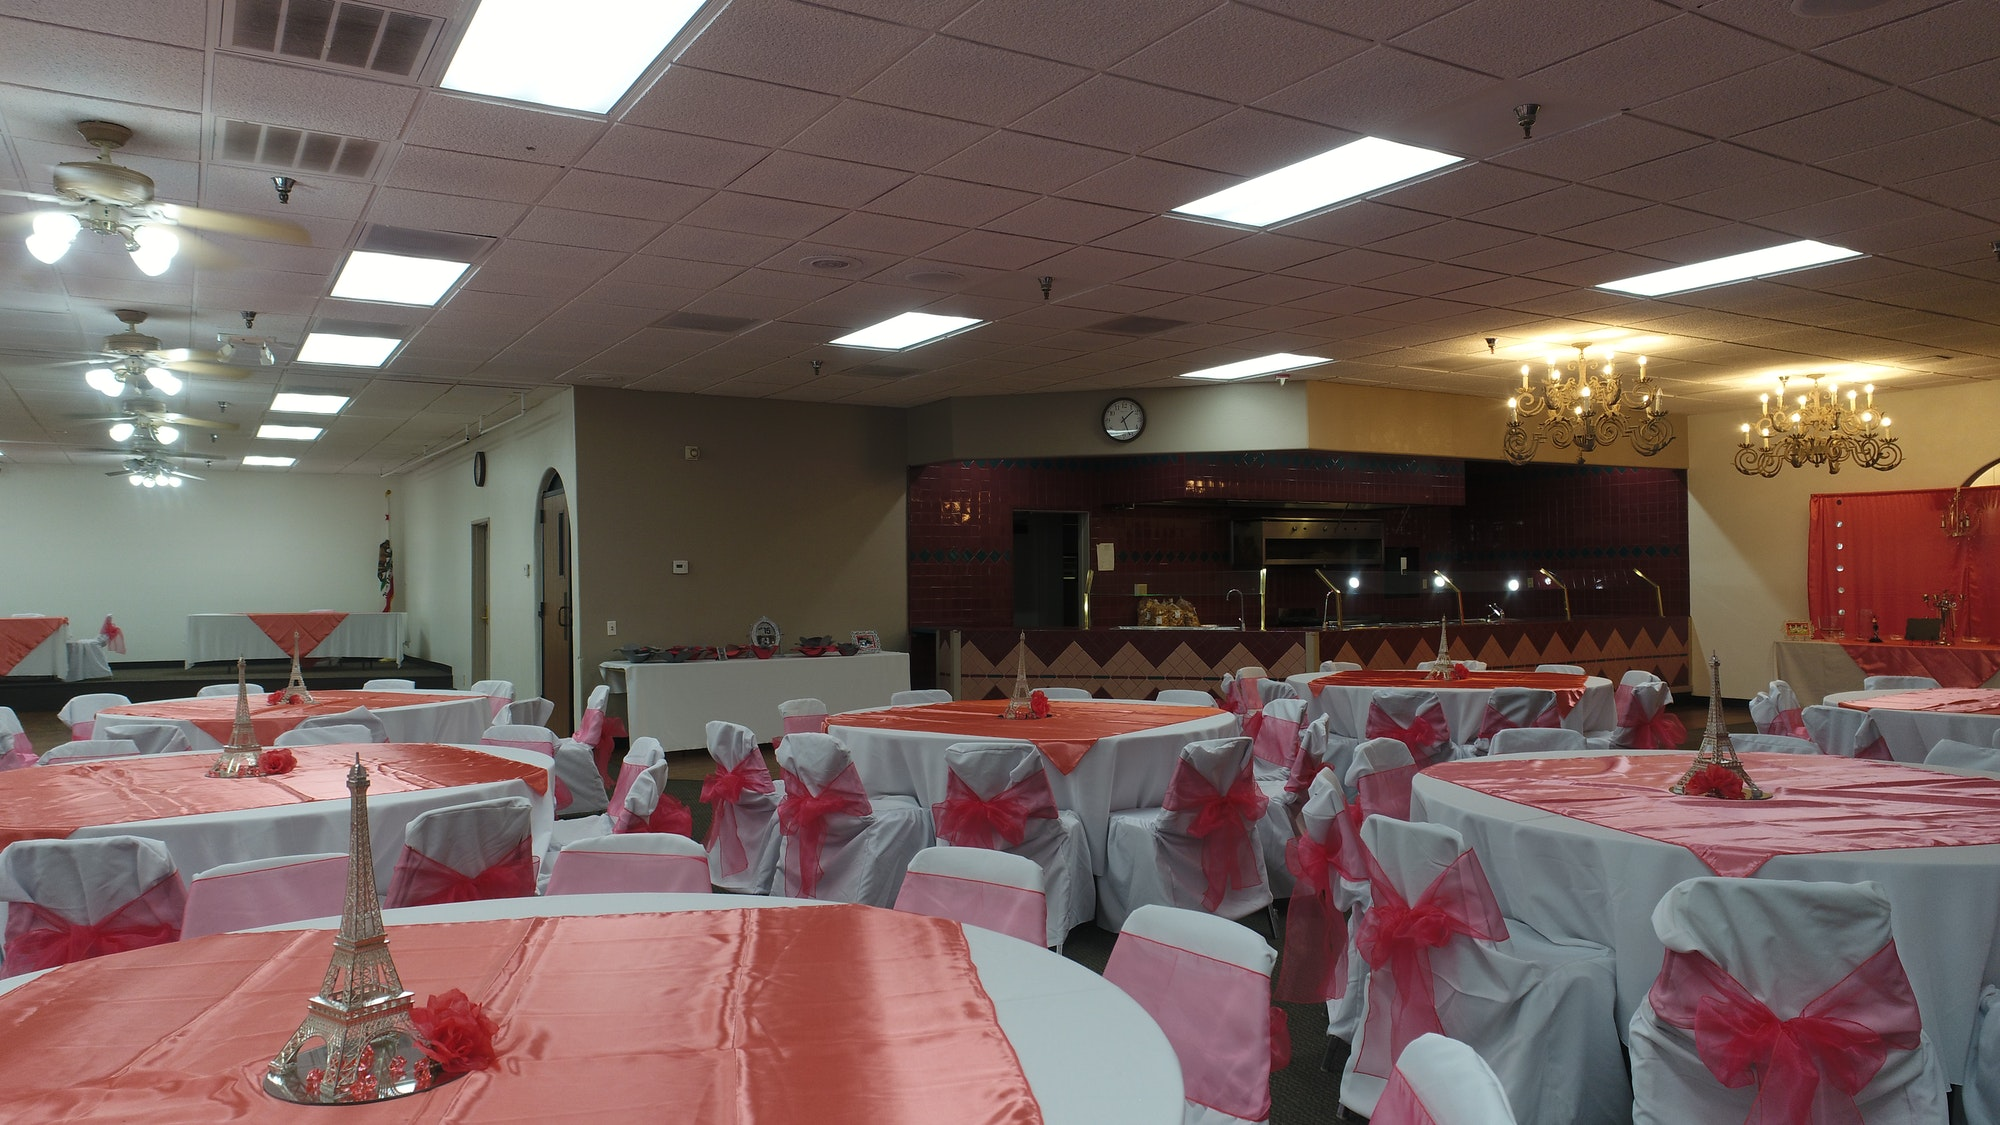 Inside view of Percy Bakker facility with tables set up for an event in North Room